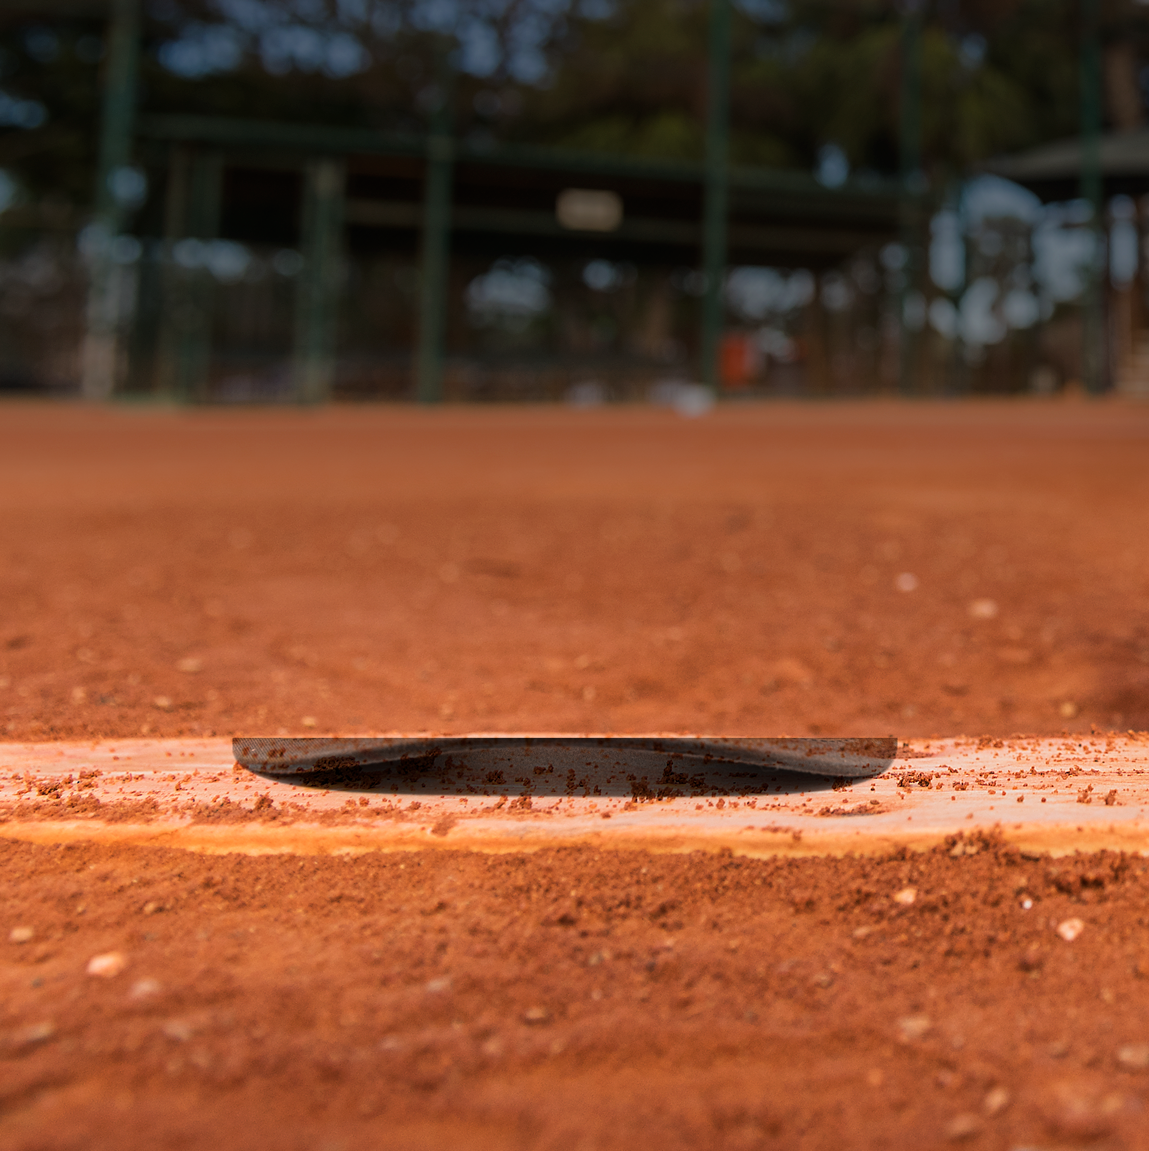 A background of a baseball diamond